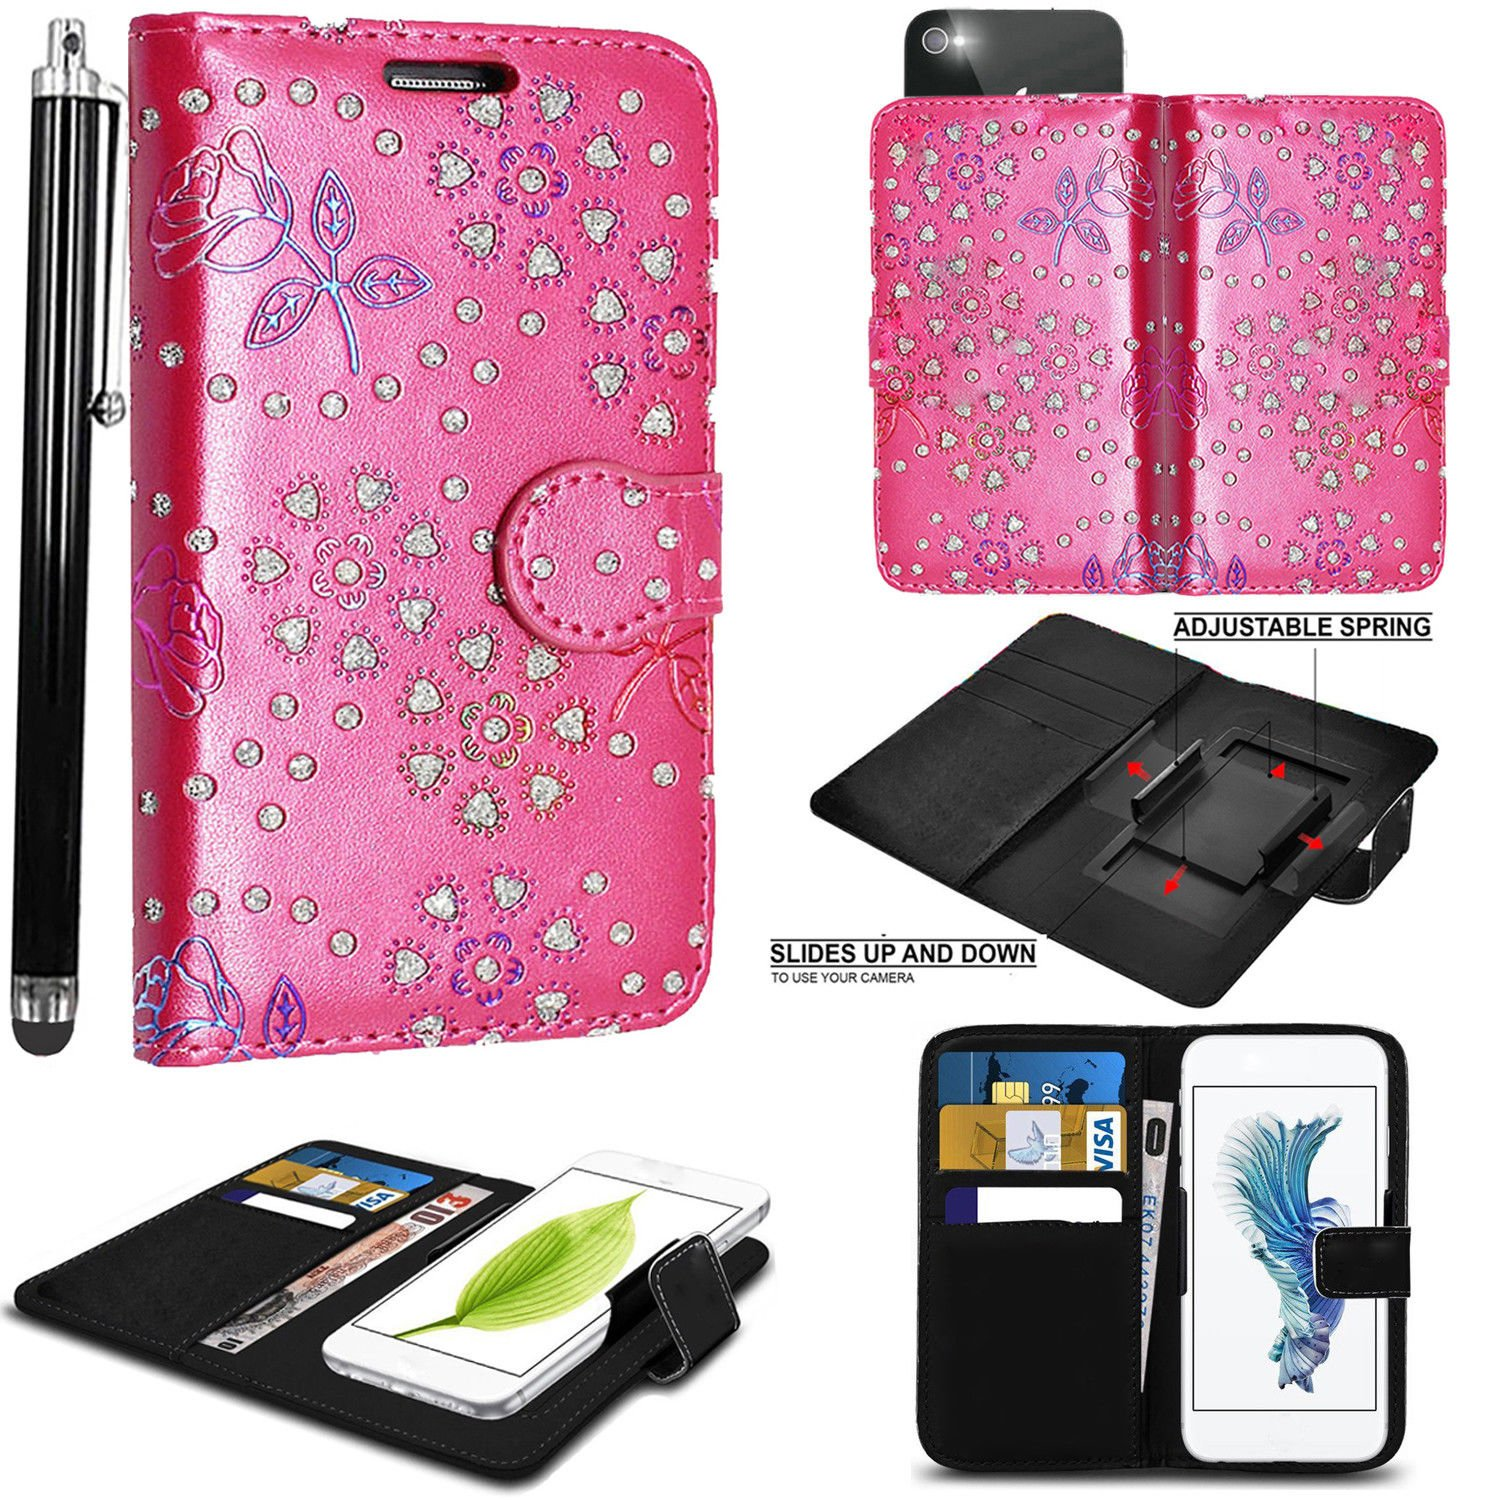 PRINTED DESIGN Mobile Stuff case for Argos Alba 5 Inch case cover pouch  Thin Faux Leather Hold it Spring Clamp Clip on Adjustable Book + Free  Stylus